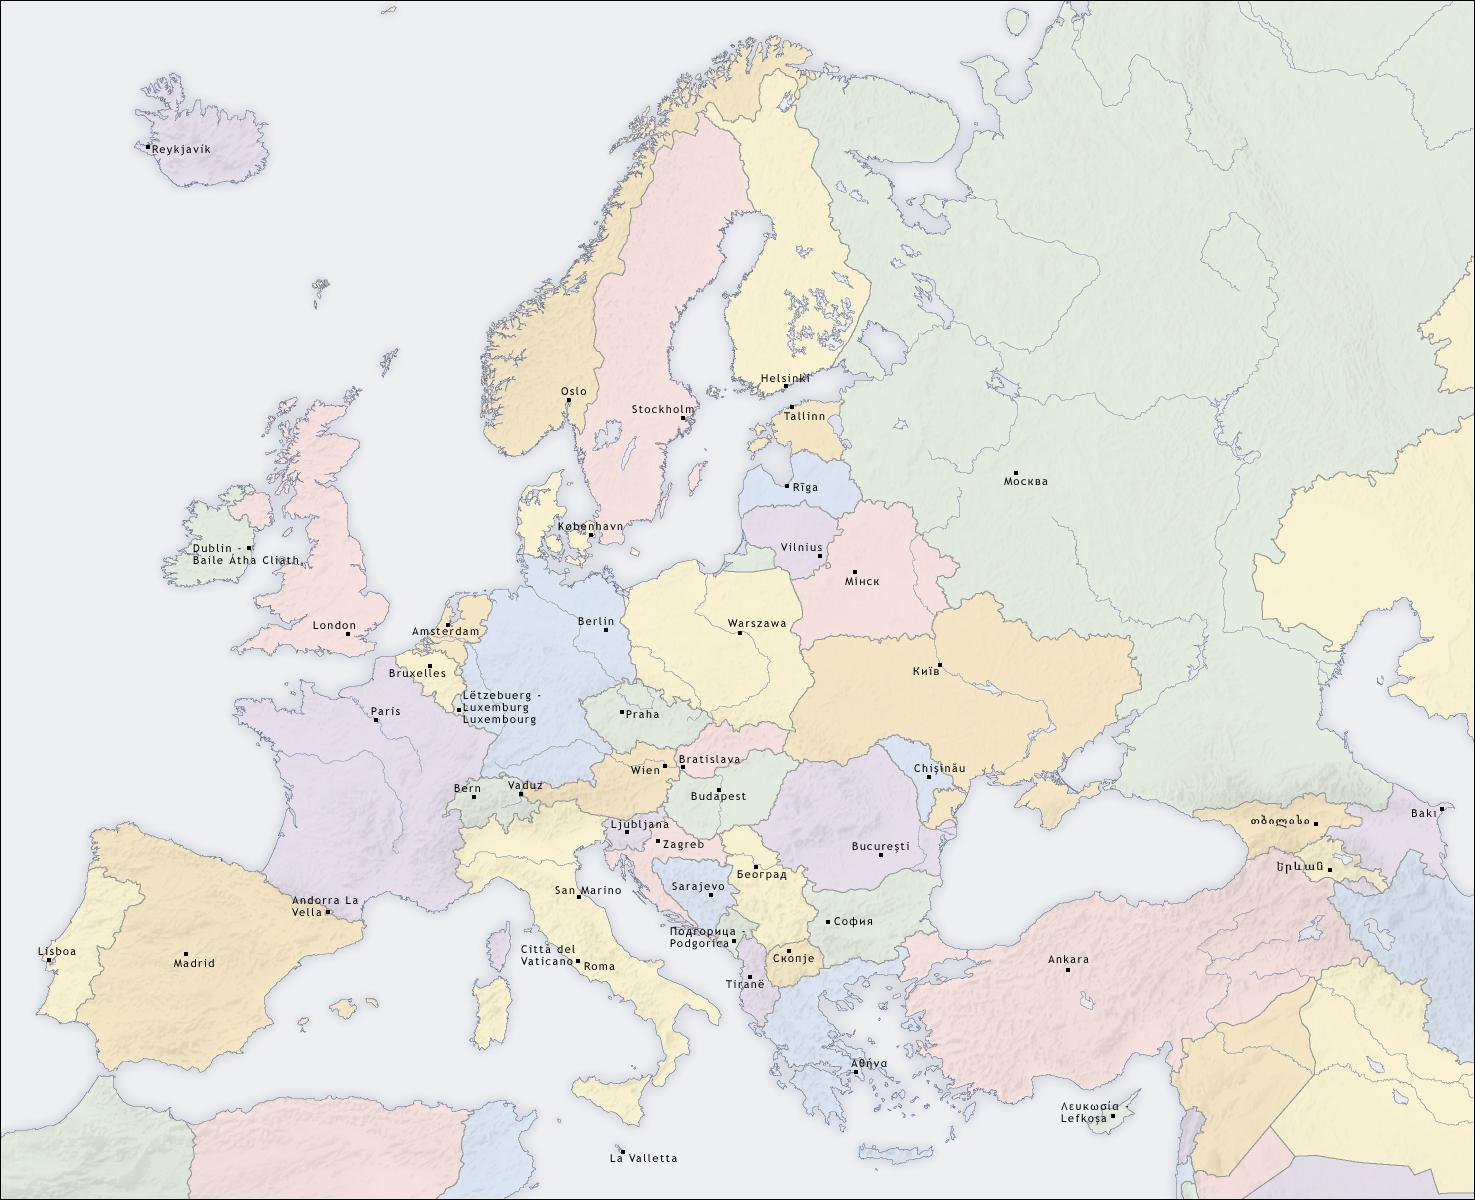 Europe Map With Capitals And Cities | Casami tout Europe Carte Capitale